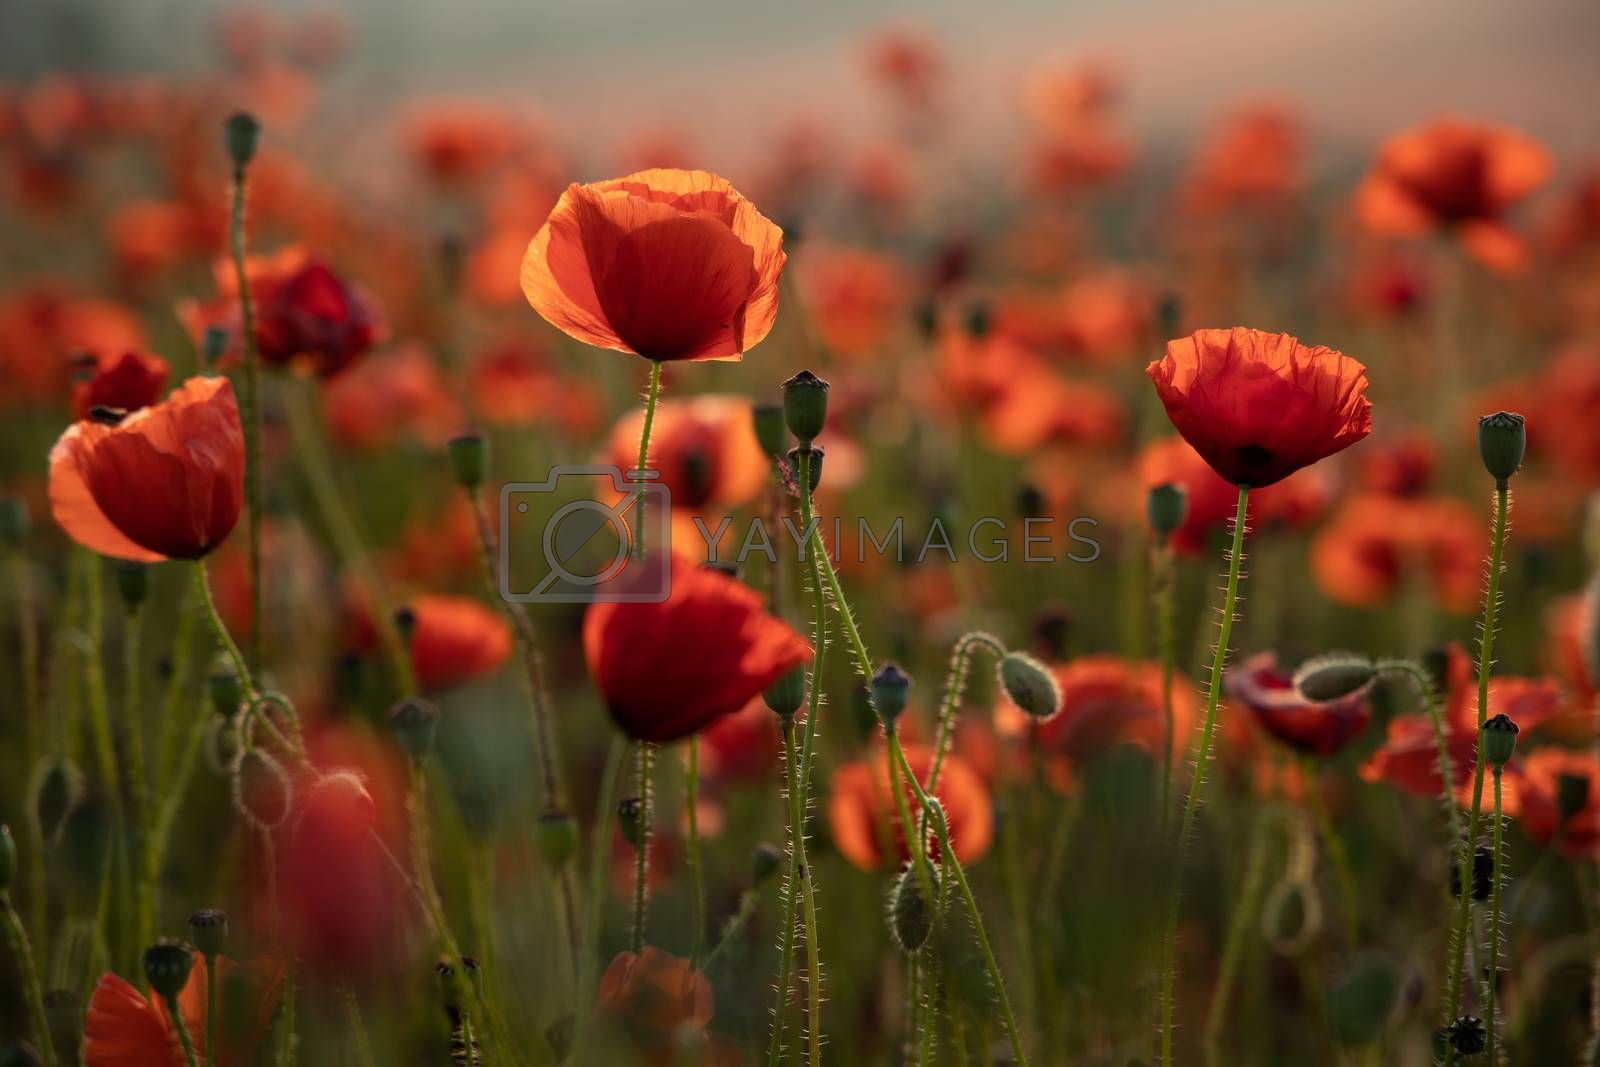 Royalty free image of Close Up View of Poppy Flowers at Dawn by kstphotography